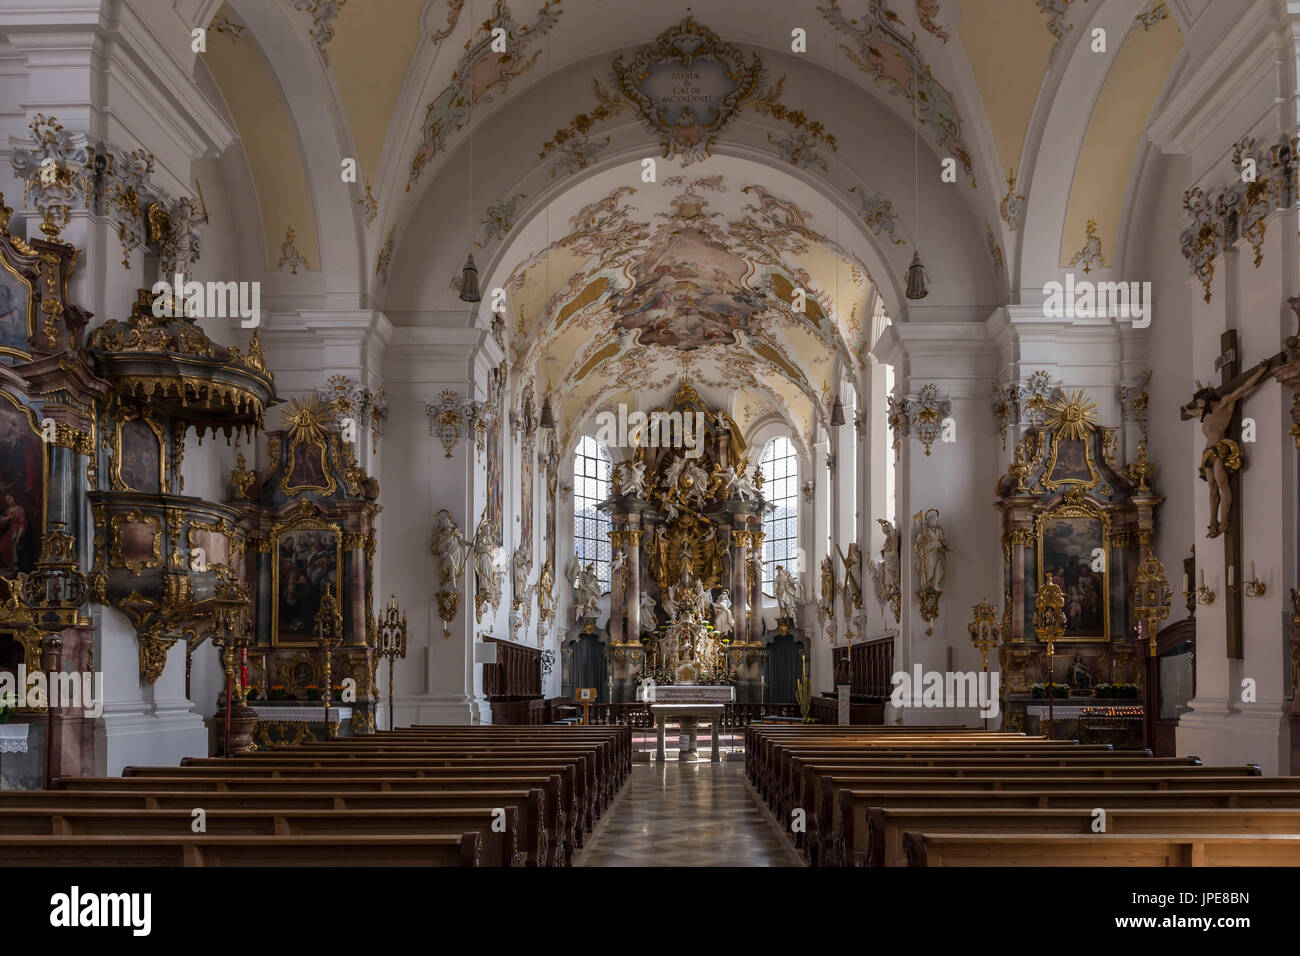 Schongau Oberbayern, Bavaria, Germany, Europe. The Cathedral of Pfarrkirche Mariae Himmelfahrt - Stock Image